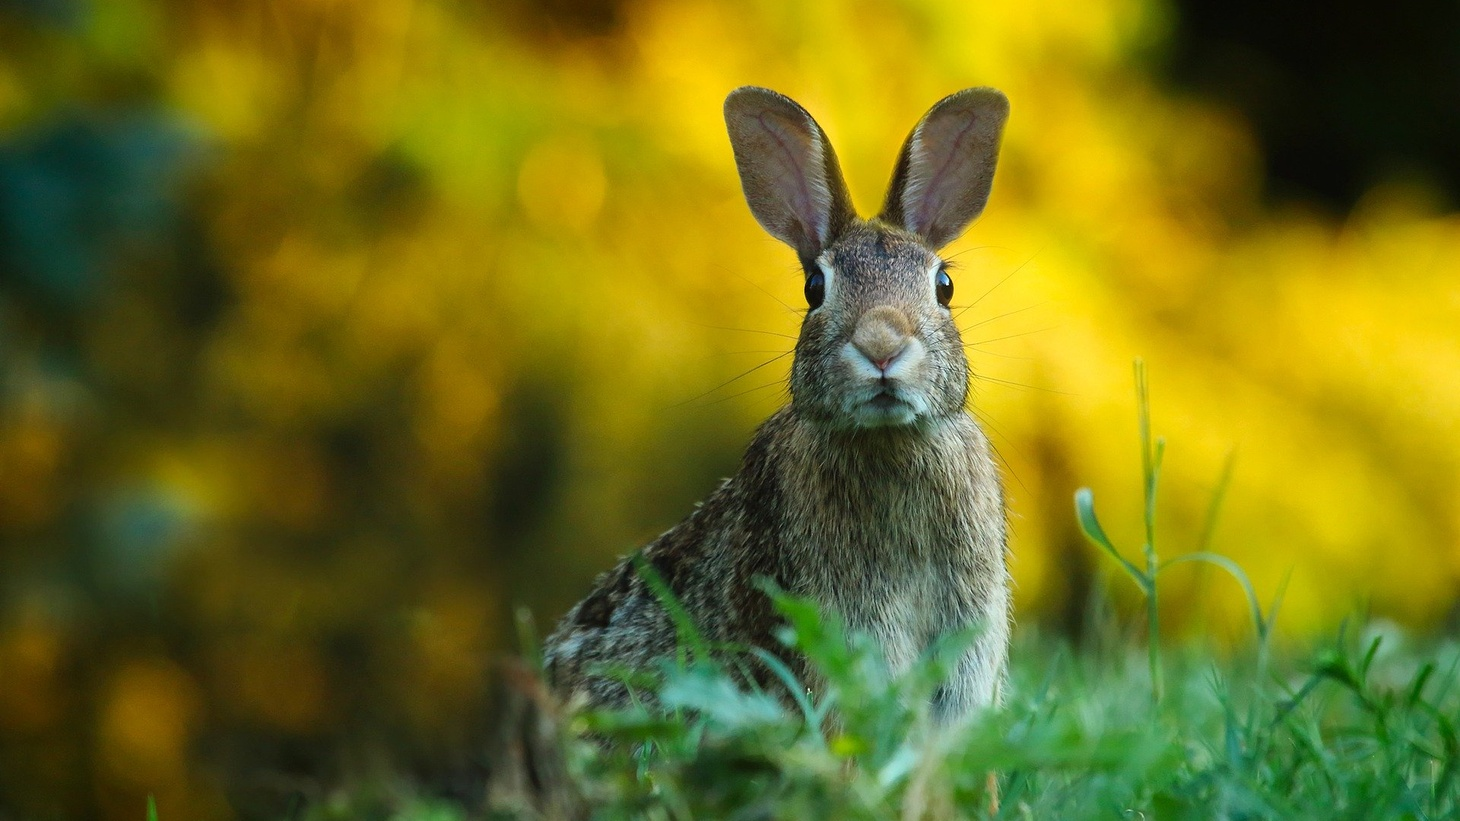 Millions of rabbits have died in Europe, Asia, and Australia due to rabbit hemorrhagic disease (RHD).